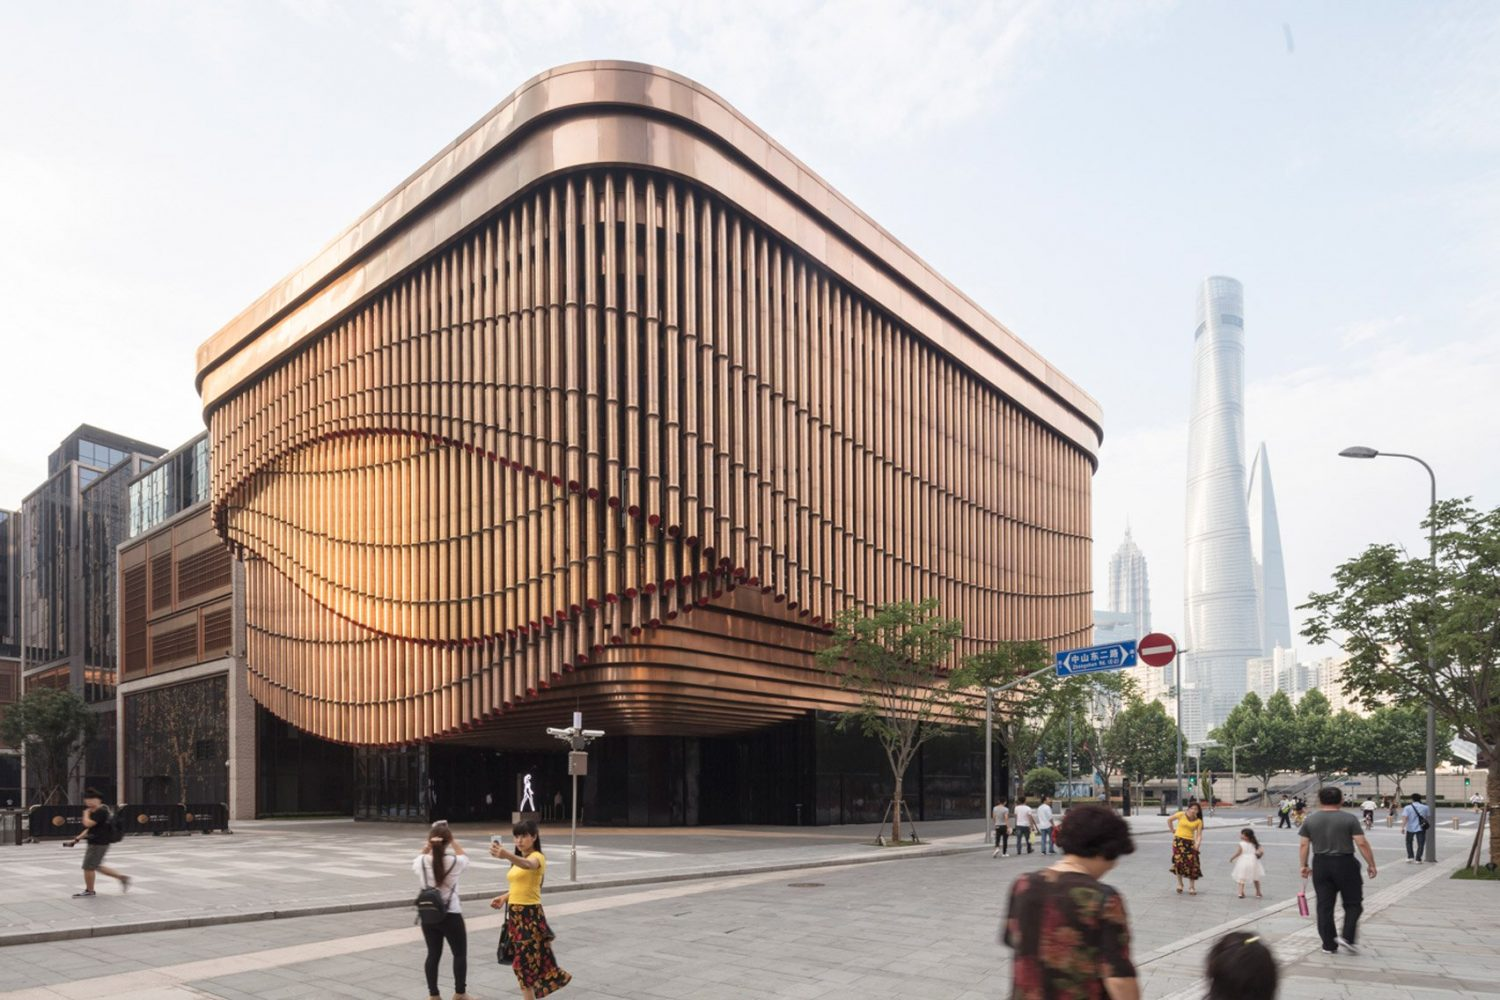 Foster + Partners and Heatherwick Studio Pair Up for New Project foster + partners Foster + Partners and Heatherwick Studio Pair Up for New Project Foster Partners and Heatherwick Studio Pair Up for New Project 3